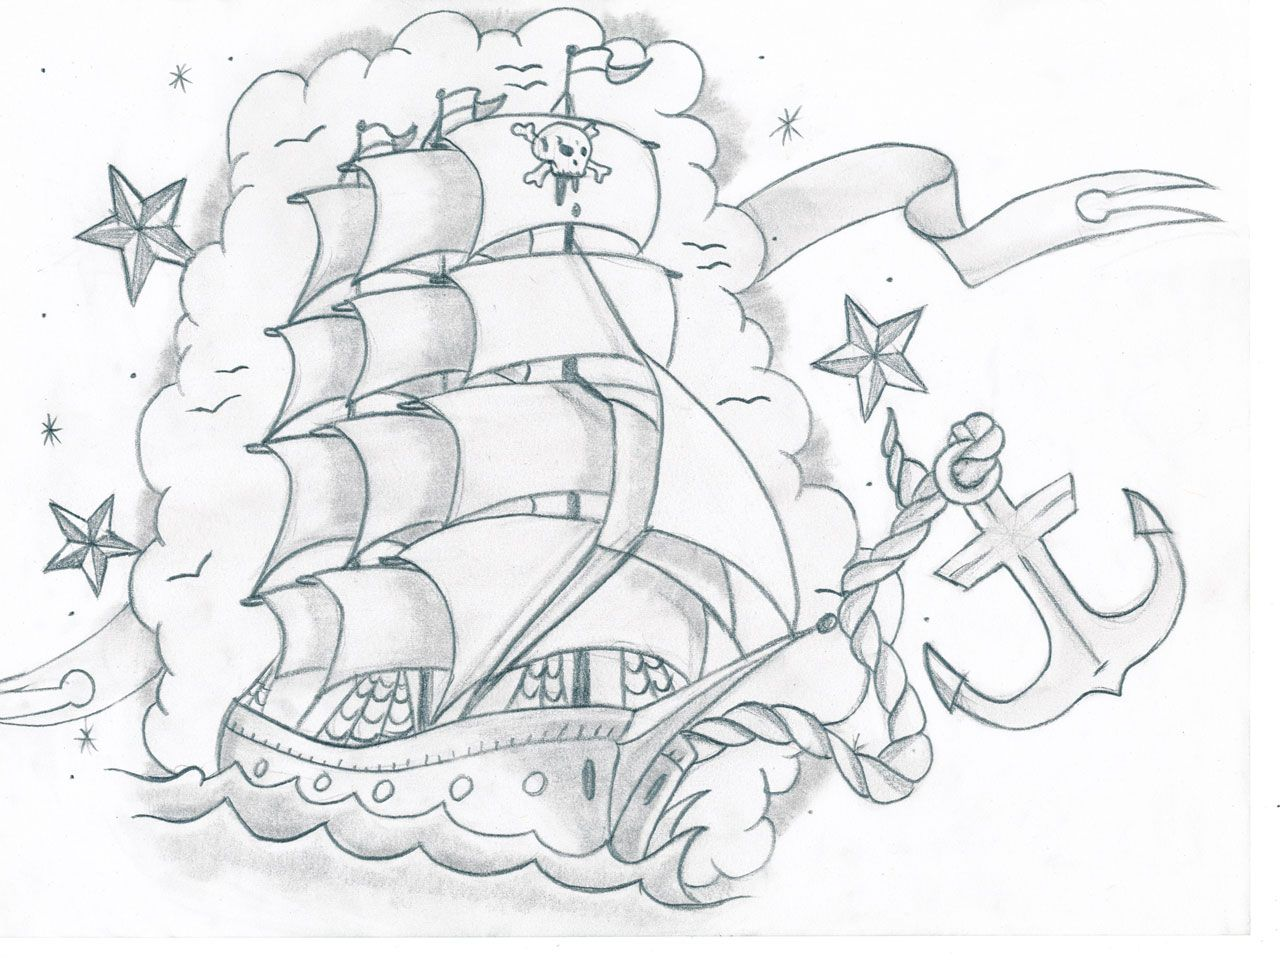 Free Designs Pirate Ship And Anchor Tattoo Wallpaper Ship Tattoo Pirate Tattoo Coloring Pages [ 960 x 1280 Pixel ]